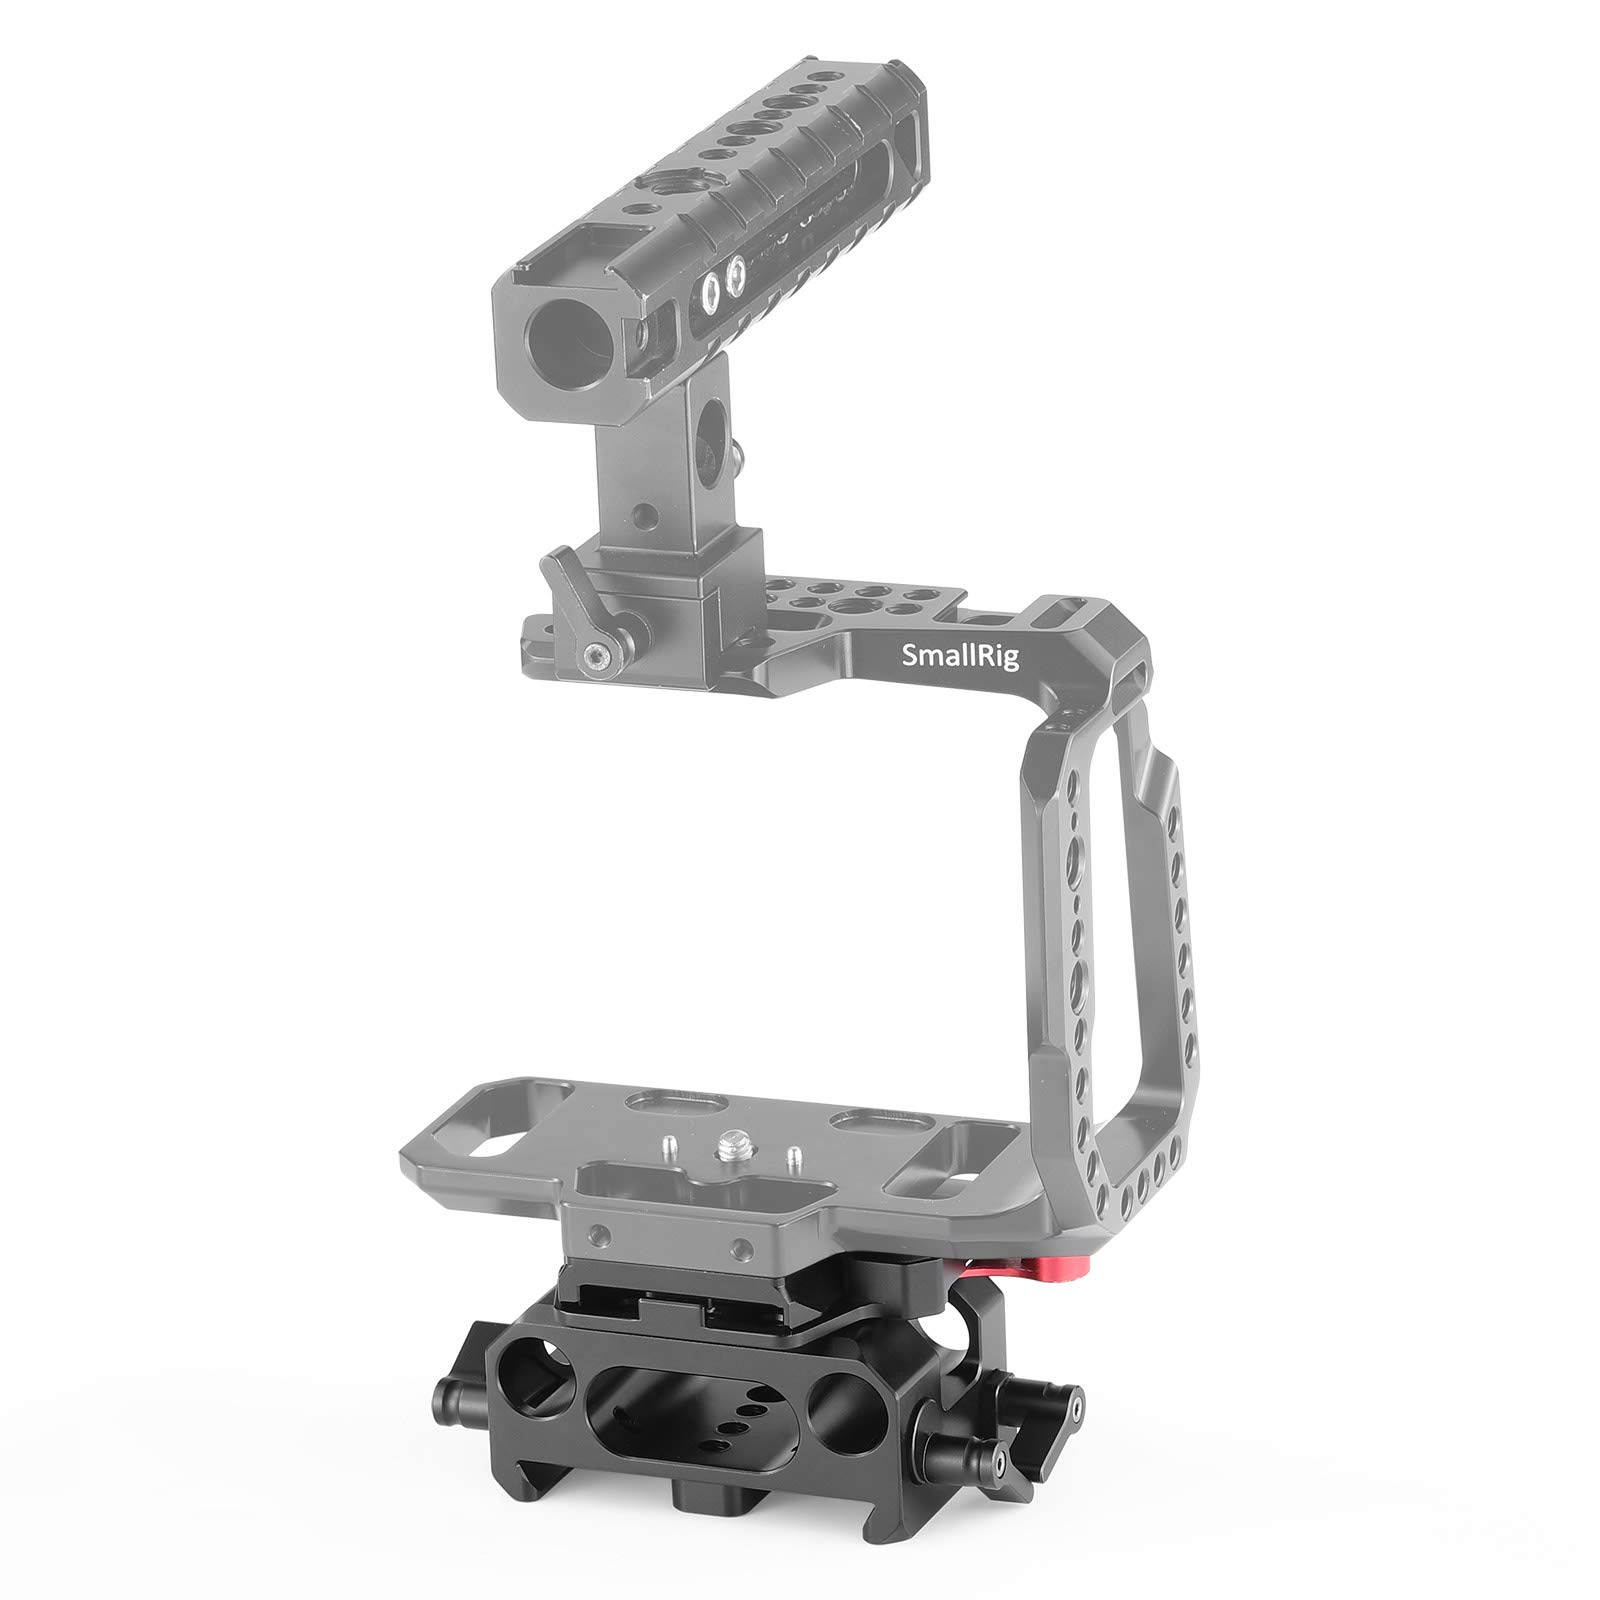 SMALLRIG 2266 BMPCC Baseplate for Manfrotto 501PL Compati...